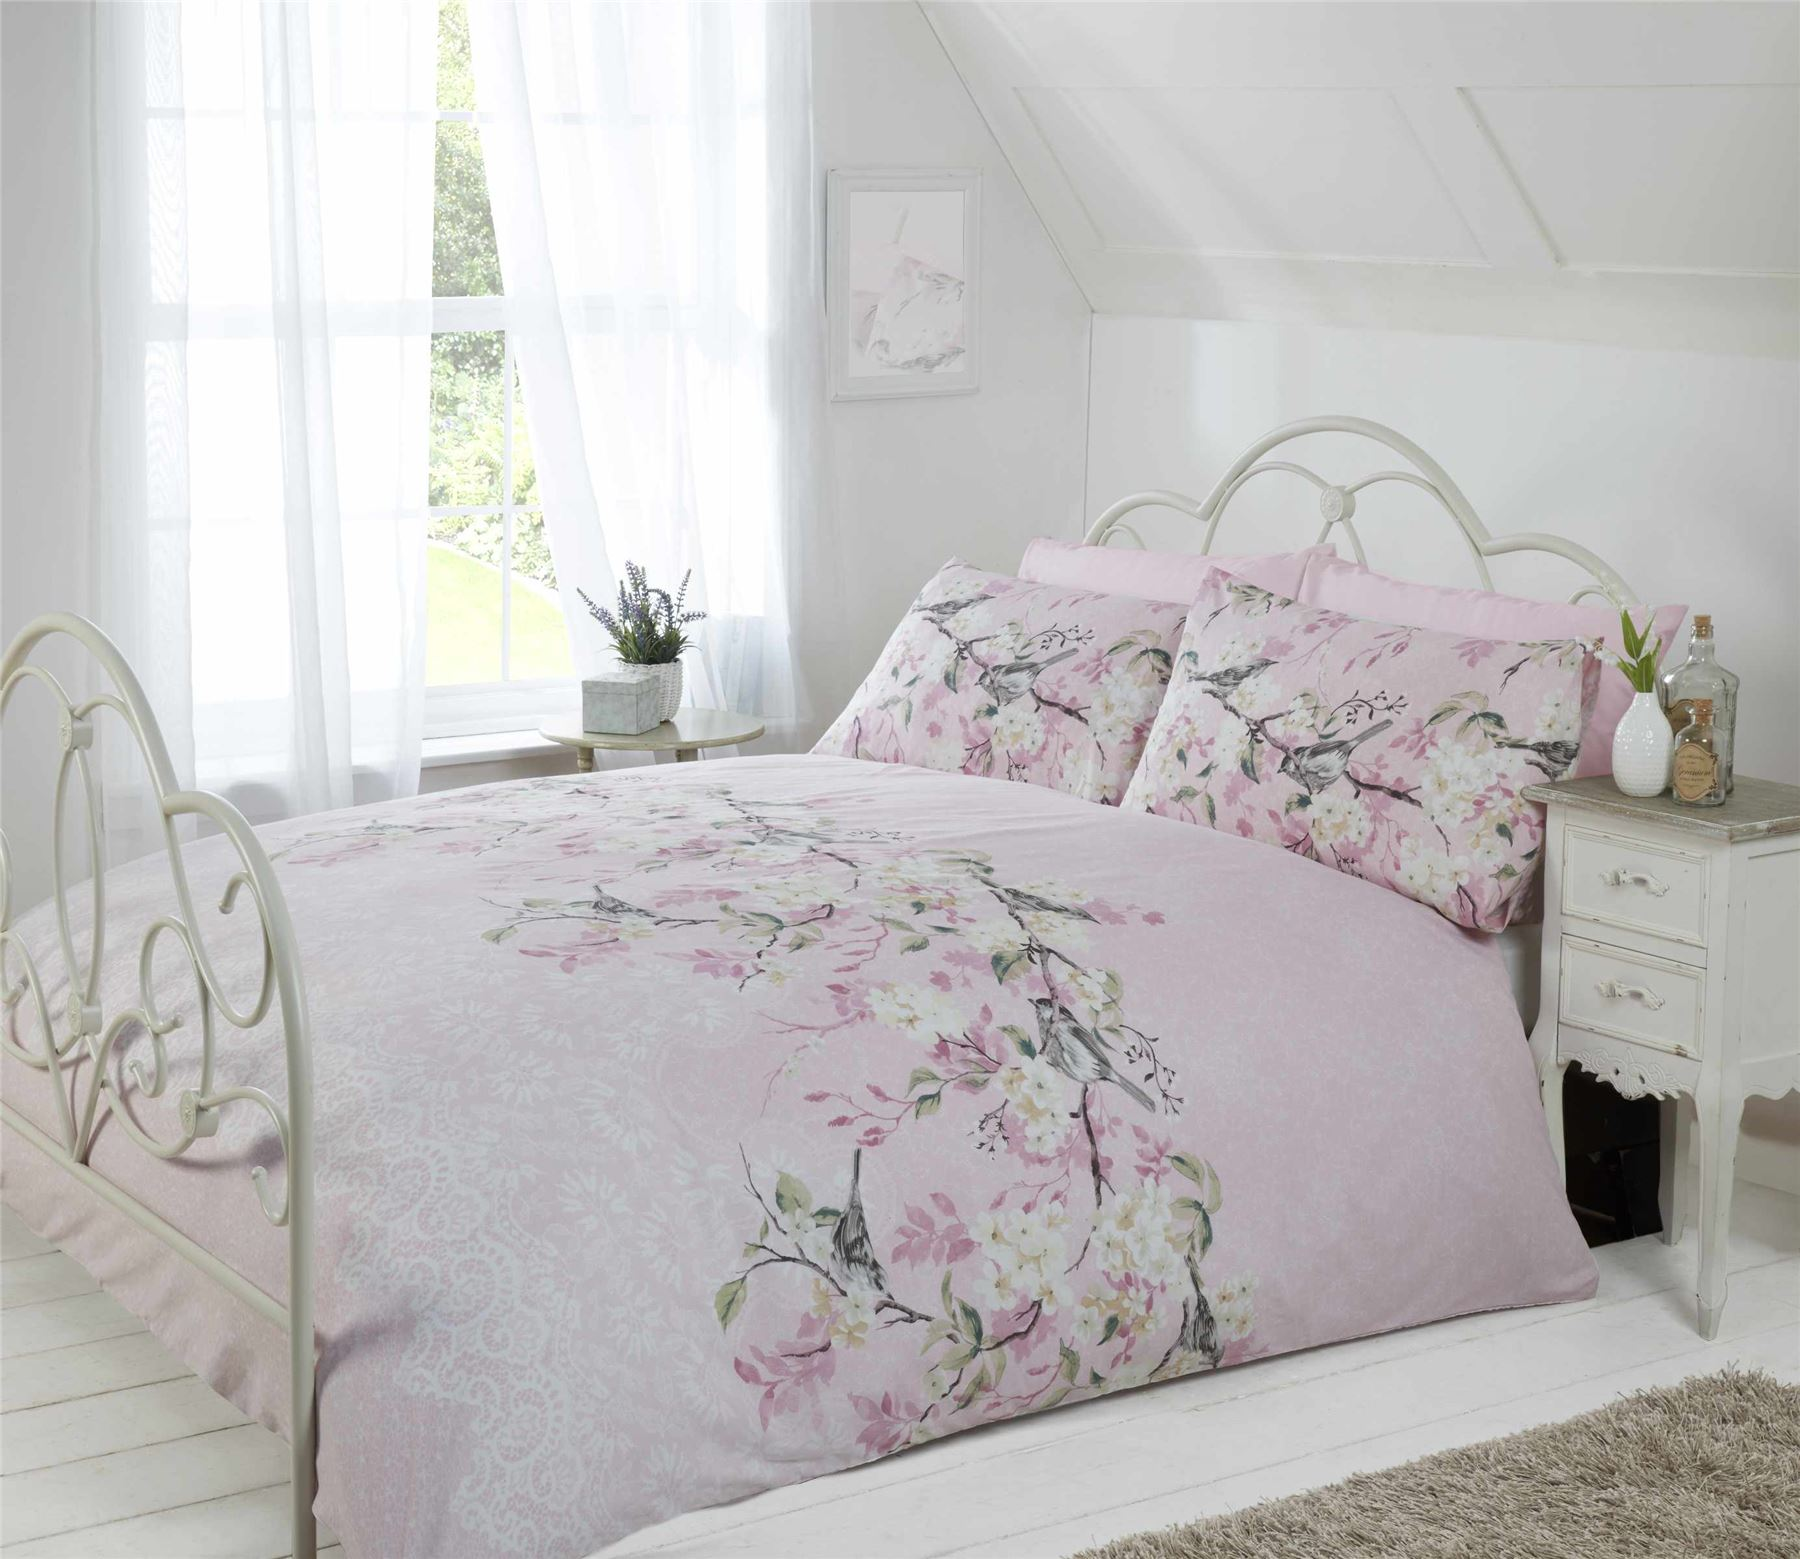 Floral-Quilt-Duvet-Cover-amp-Pillowcase-Bedding-Bed-Sets-Flowers-Modern-New thumbnail 17